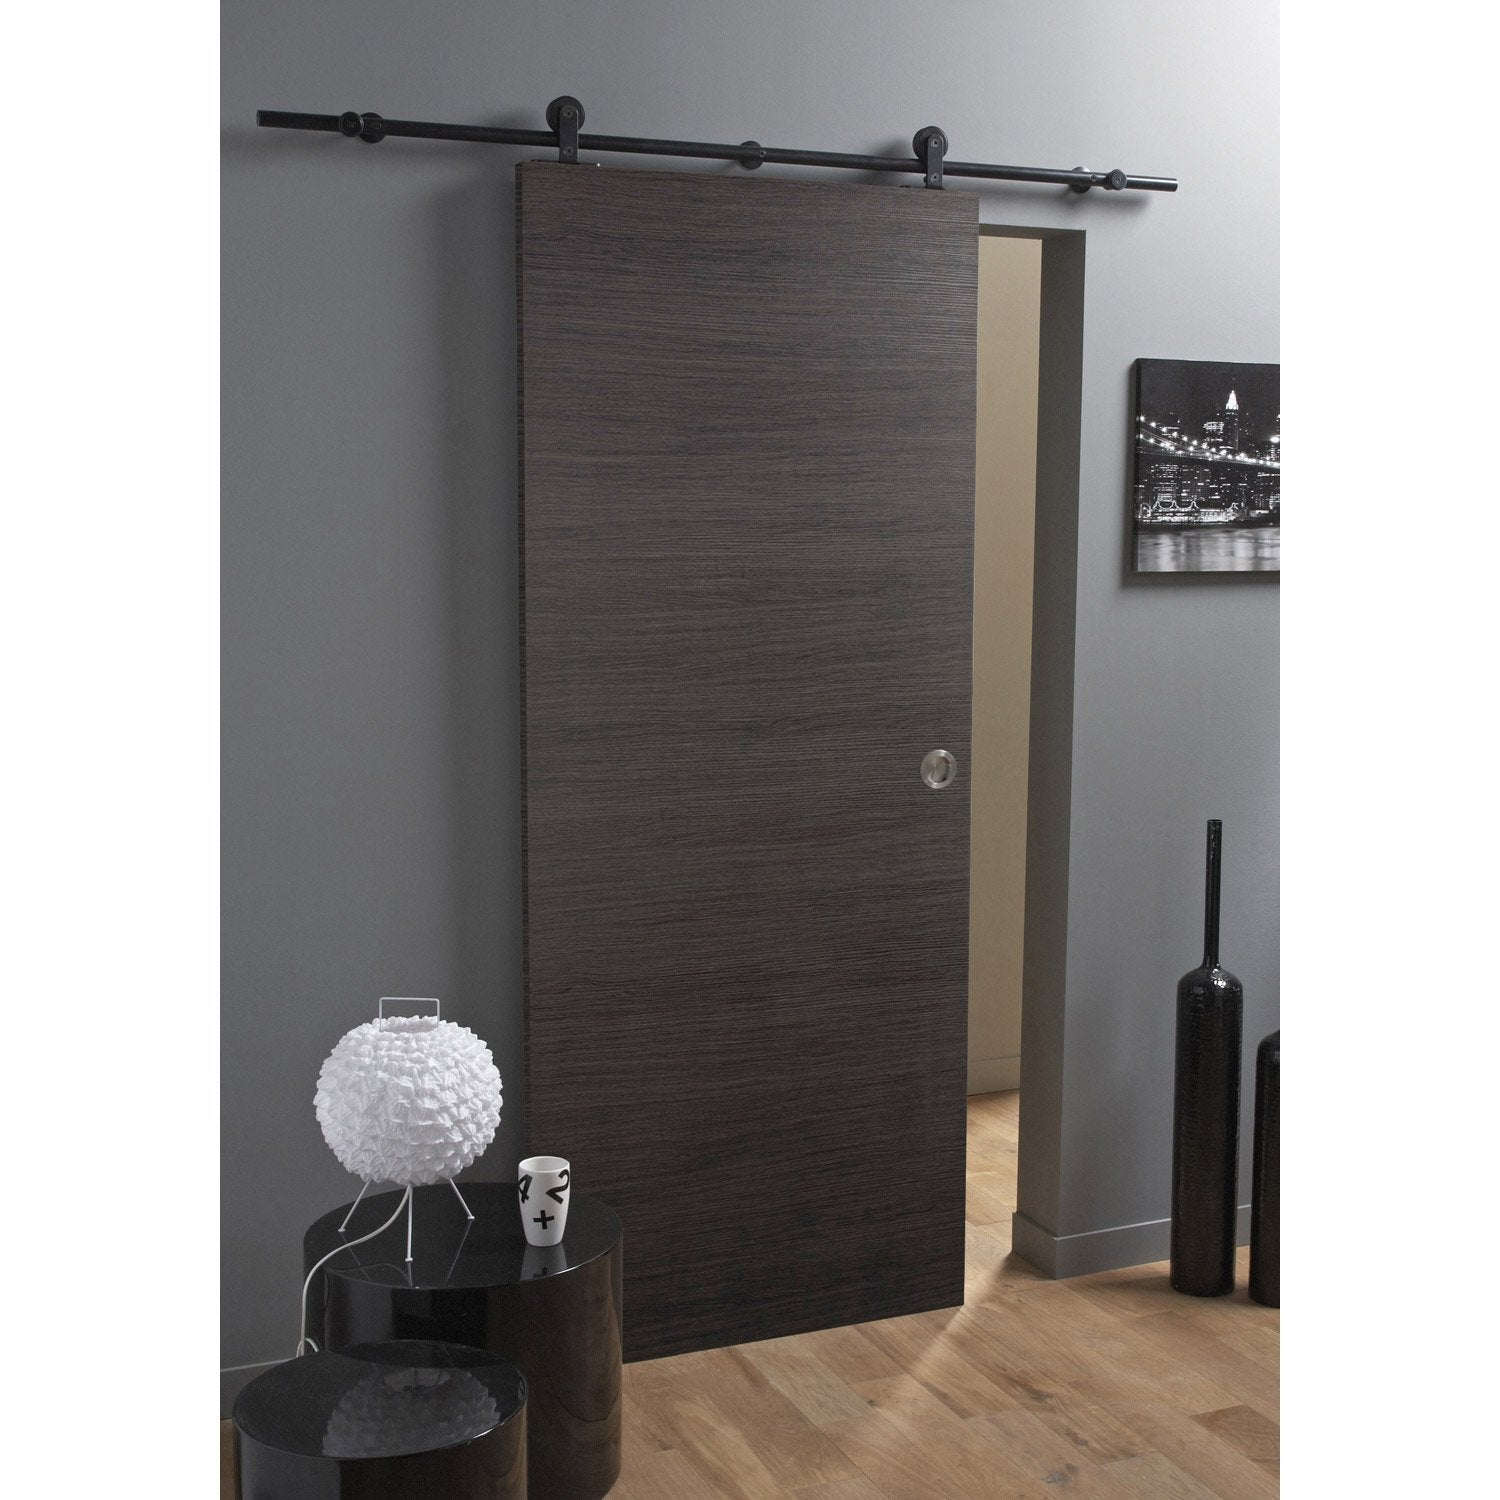 Ensemble porte coulissante londres mdf rev tu avec le rail bol ro noir alumin - Porte renovation leroy merlin ...